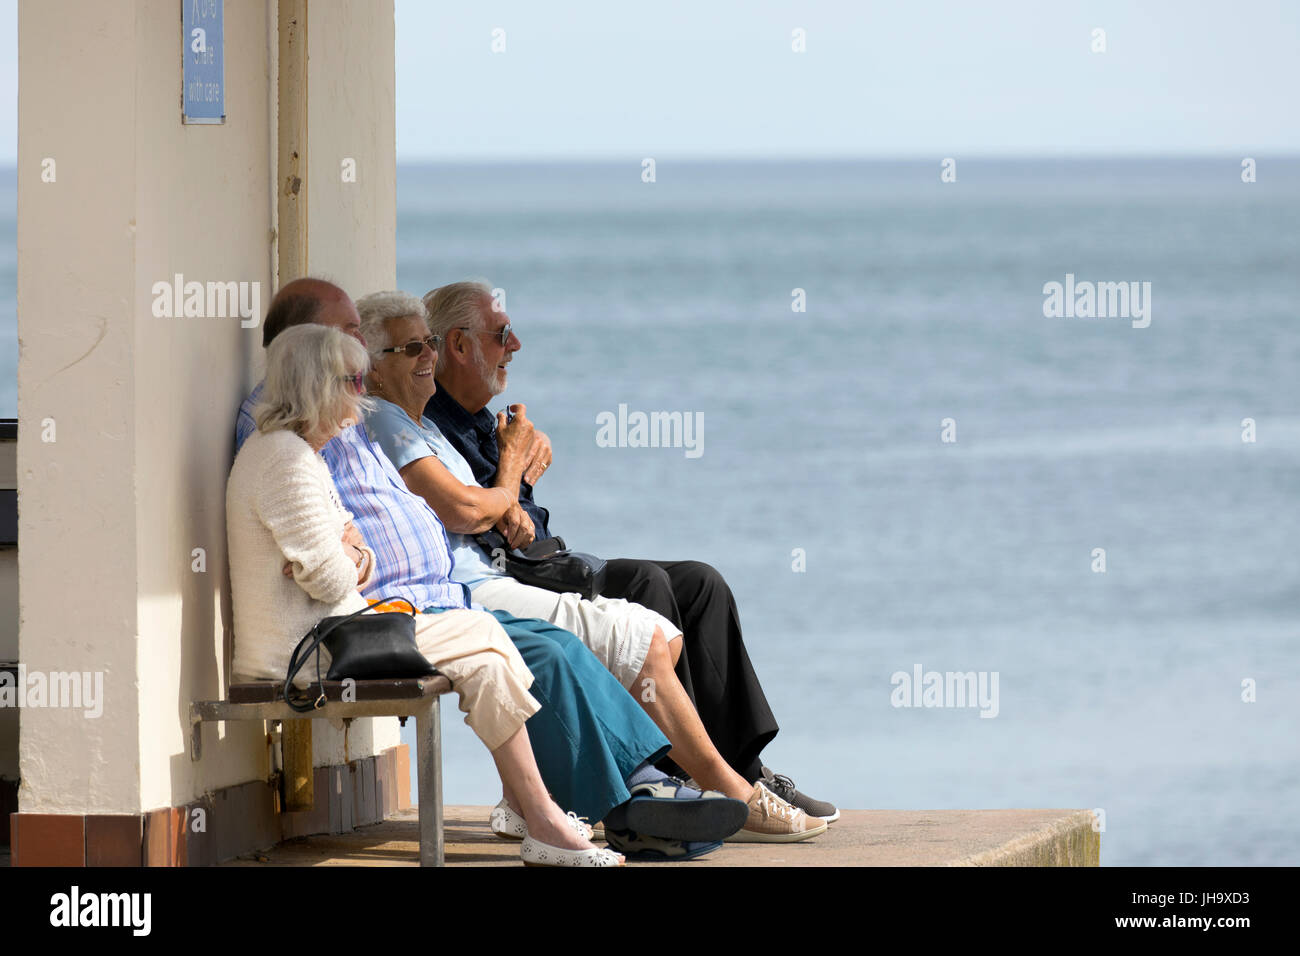 Elderly people sitting in the shade of a promenade shelter at the coatal resort town of Llandudno in North Wales - Stock Image